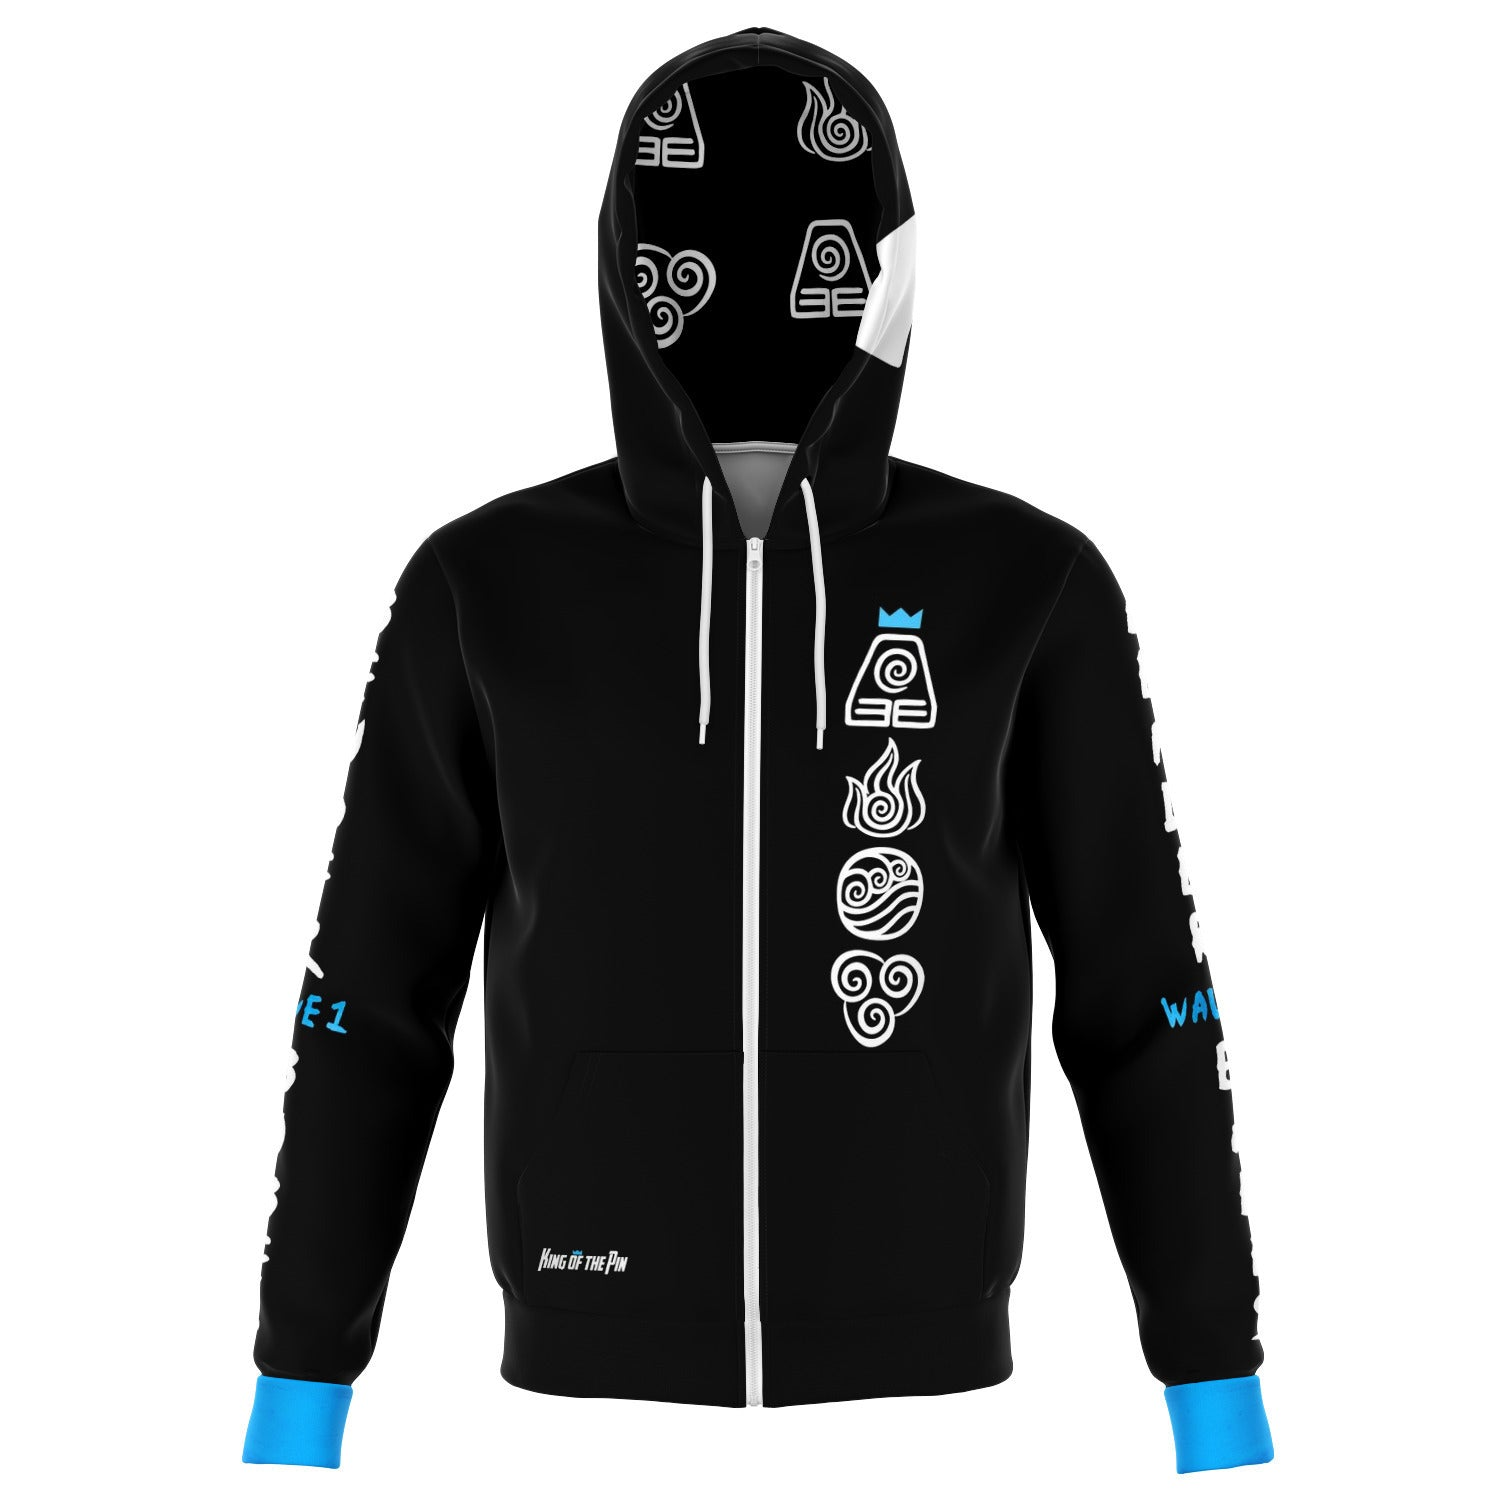 Bender Babes [Wave 1] (Black) Zip-Up Hoodie